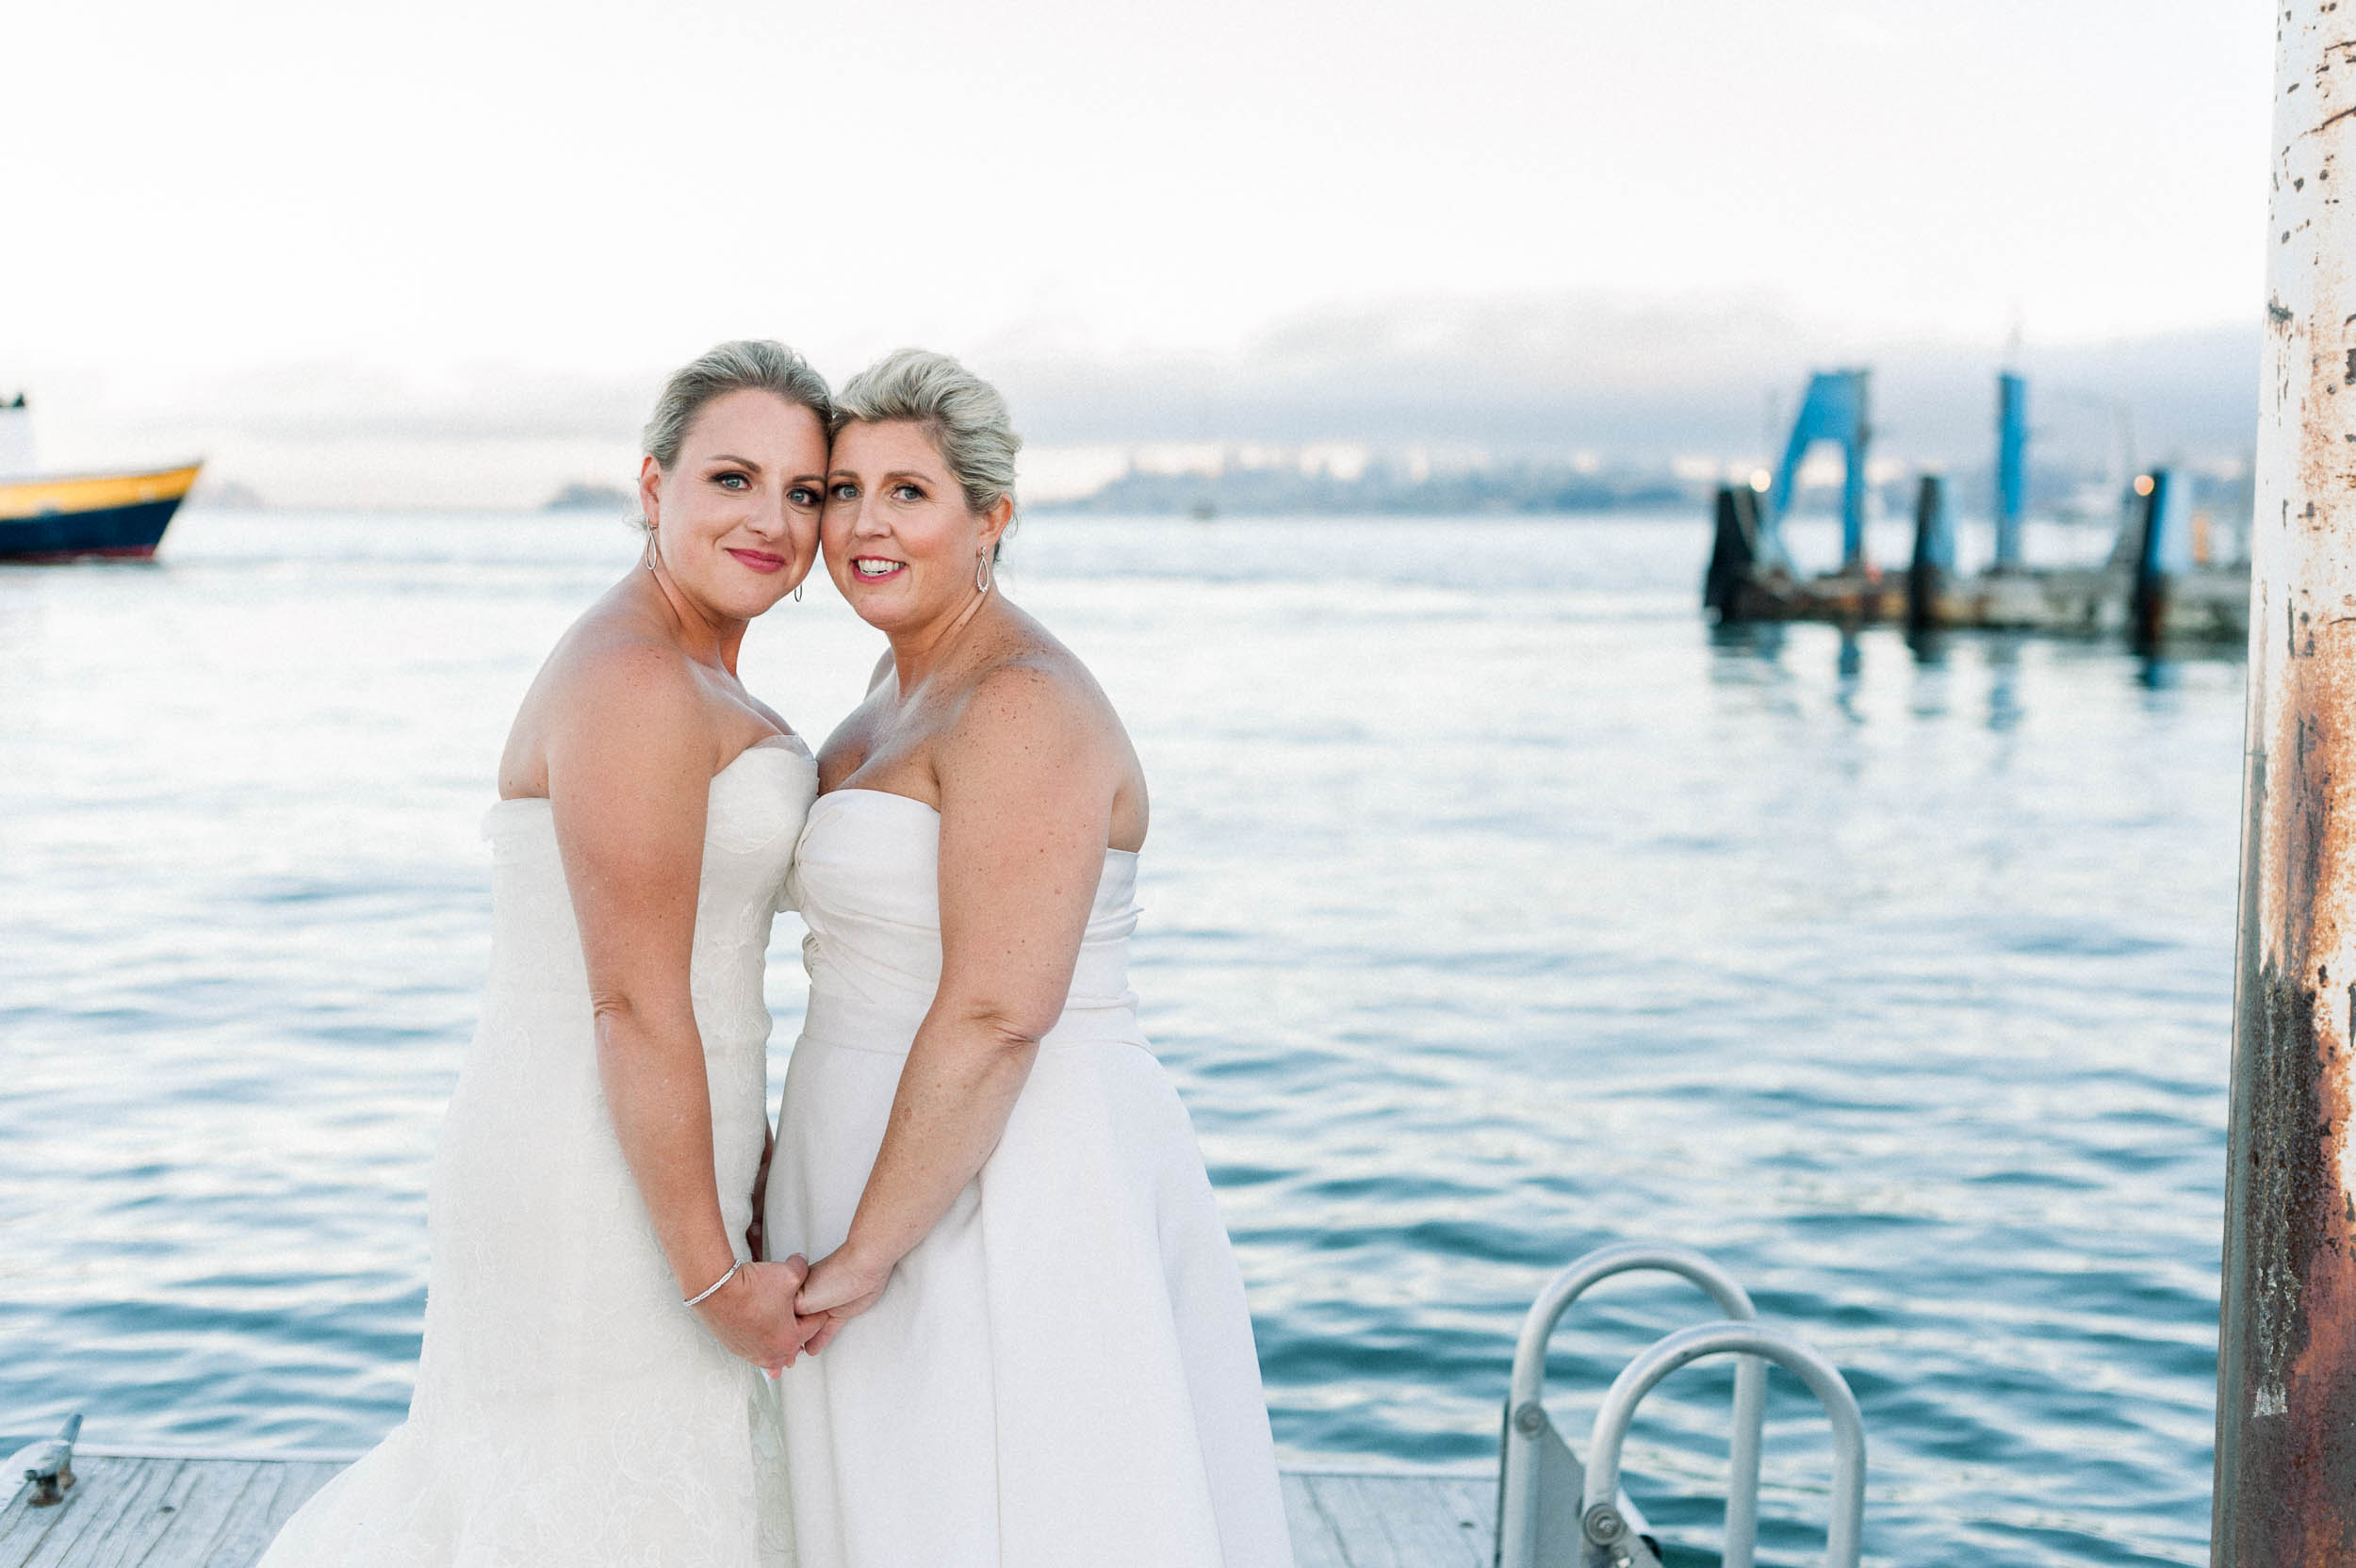 092218KF1203_Sausalito Yacht Club Wedding_Buena Lane Photography.jpg